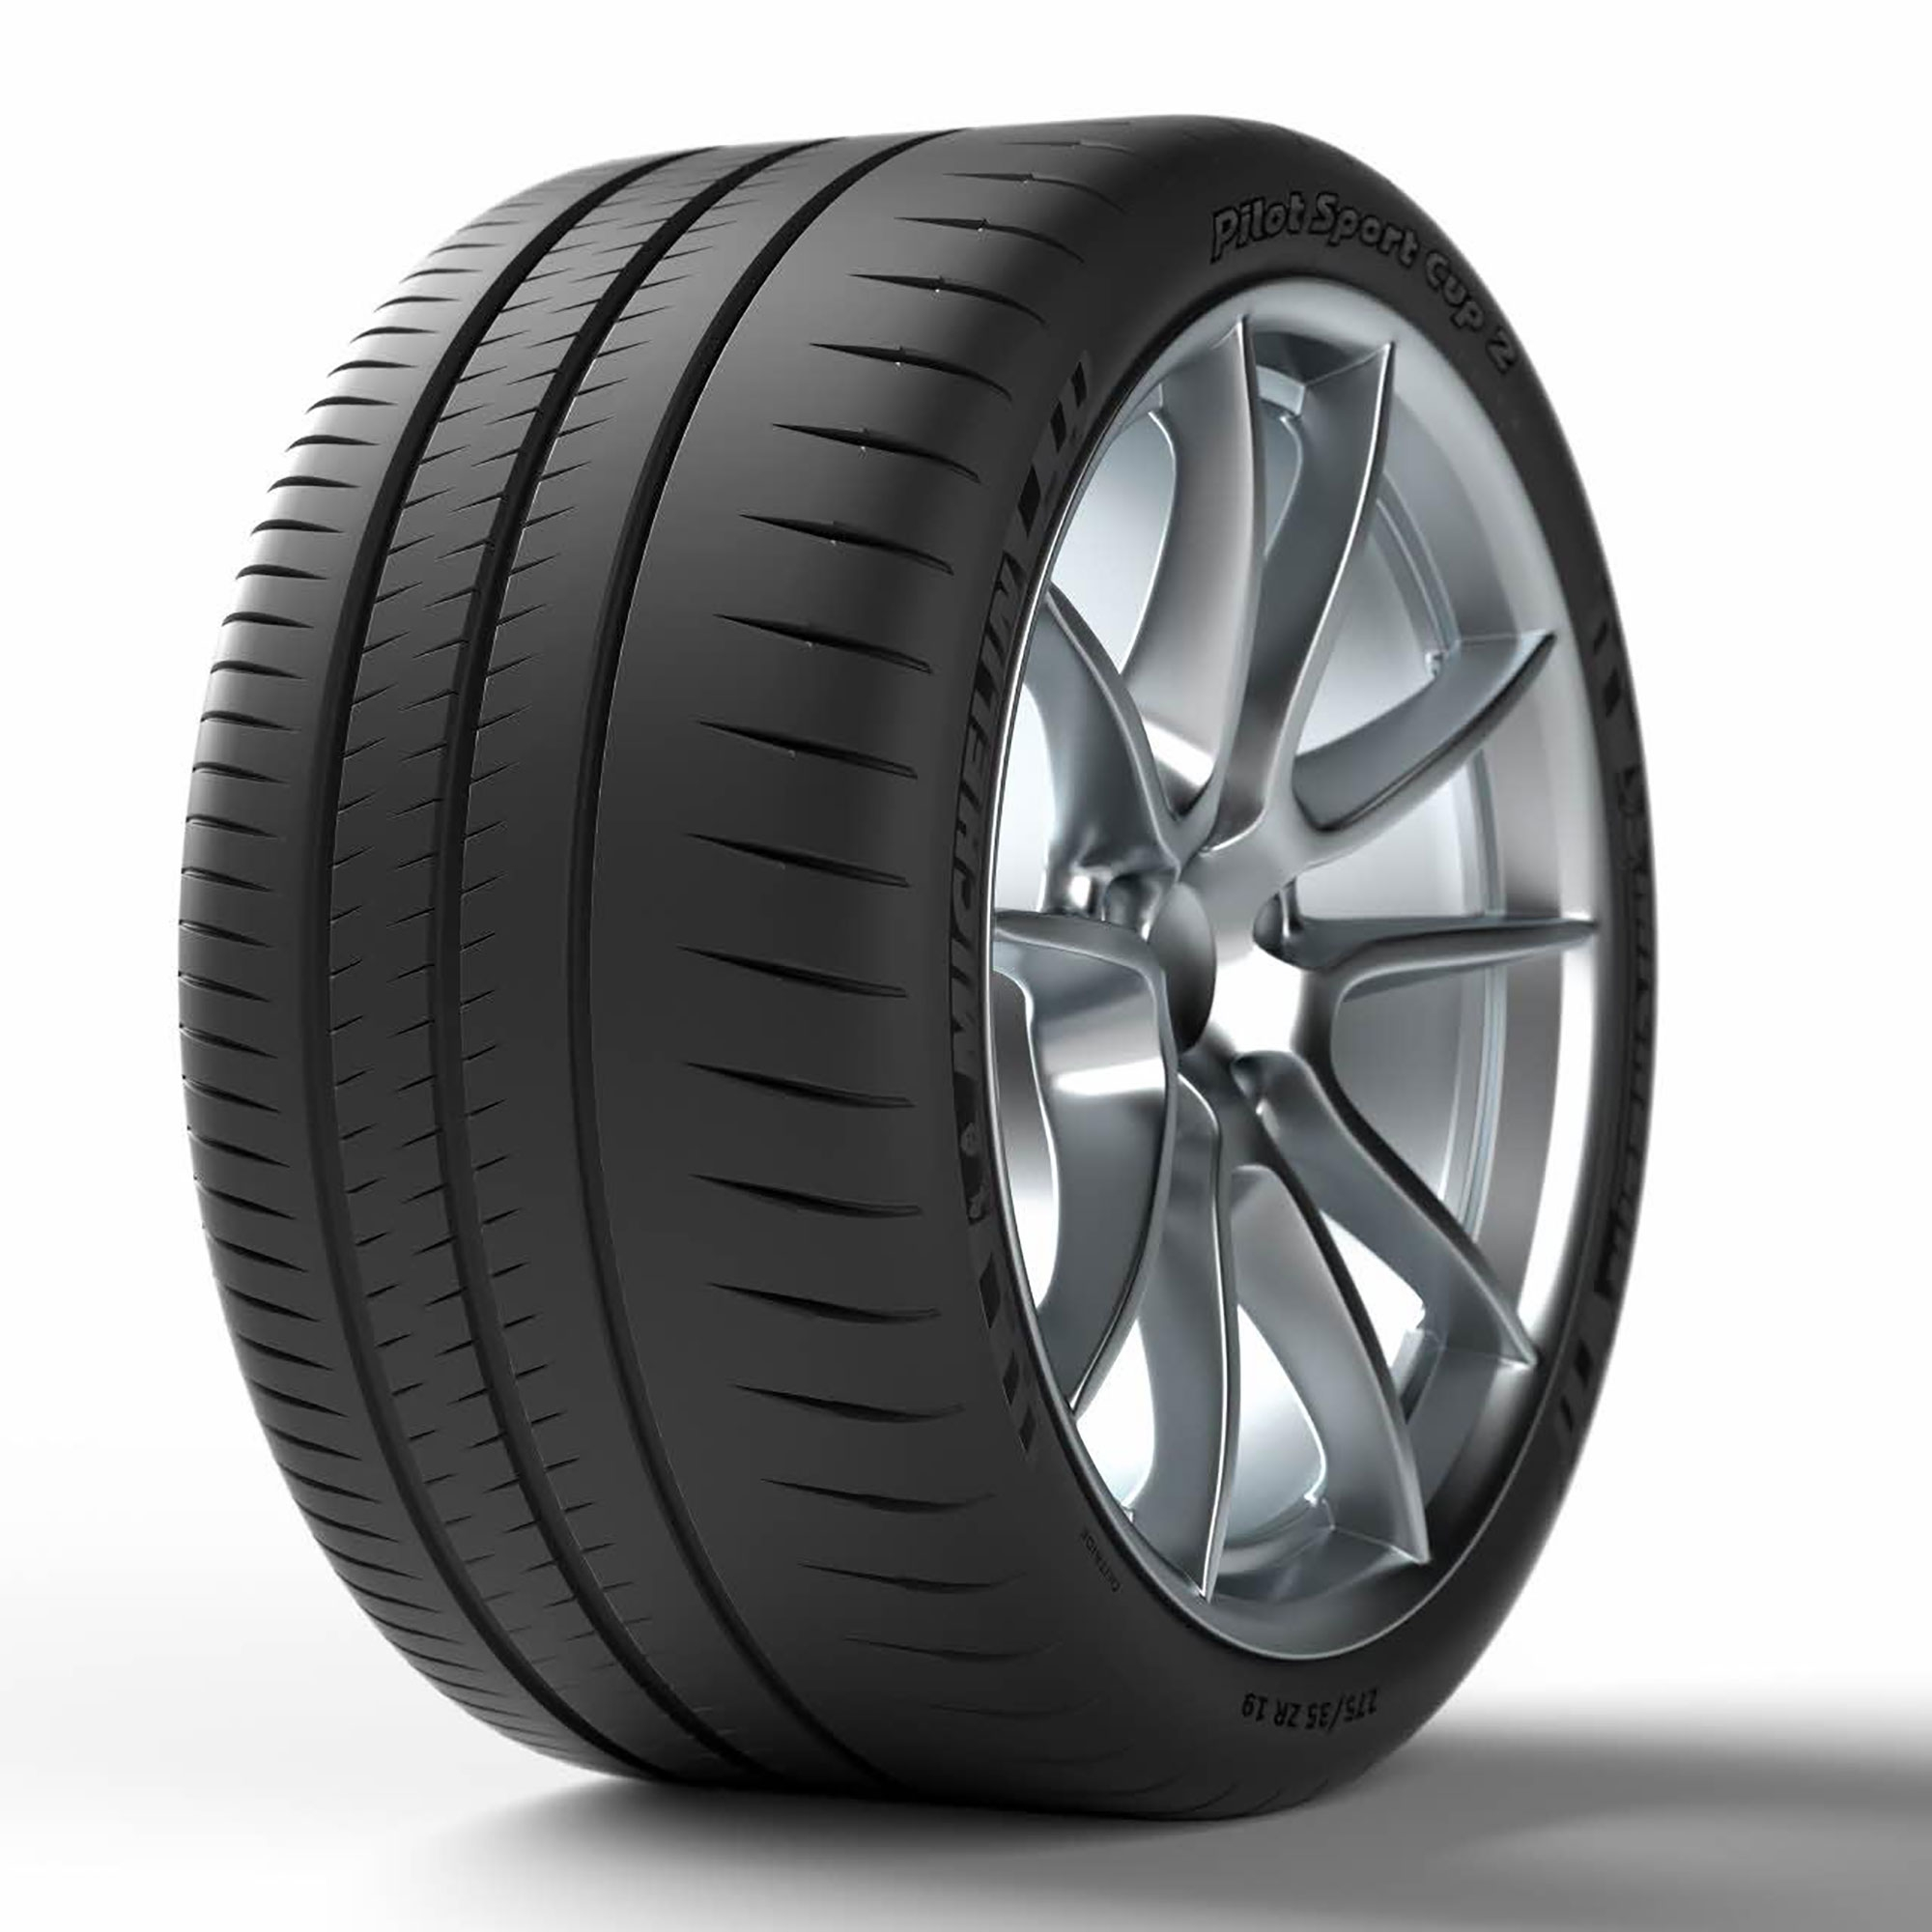 Michelin ZR XL PILOT SPORT CUP 2 CONNECT 295/30 R19 100Y nyári gumi